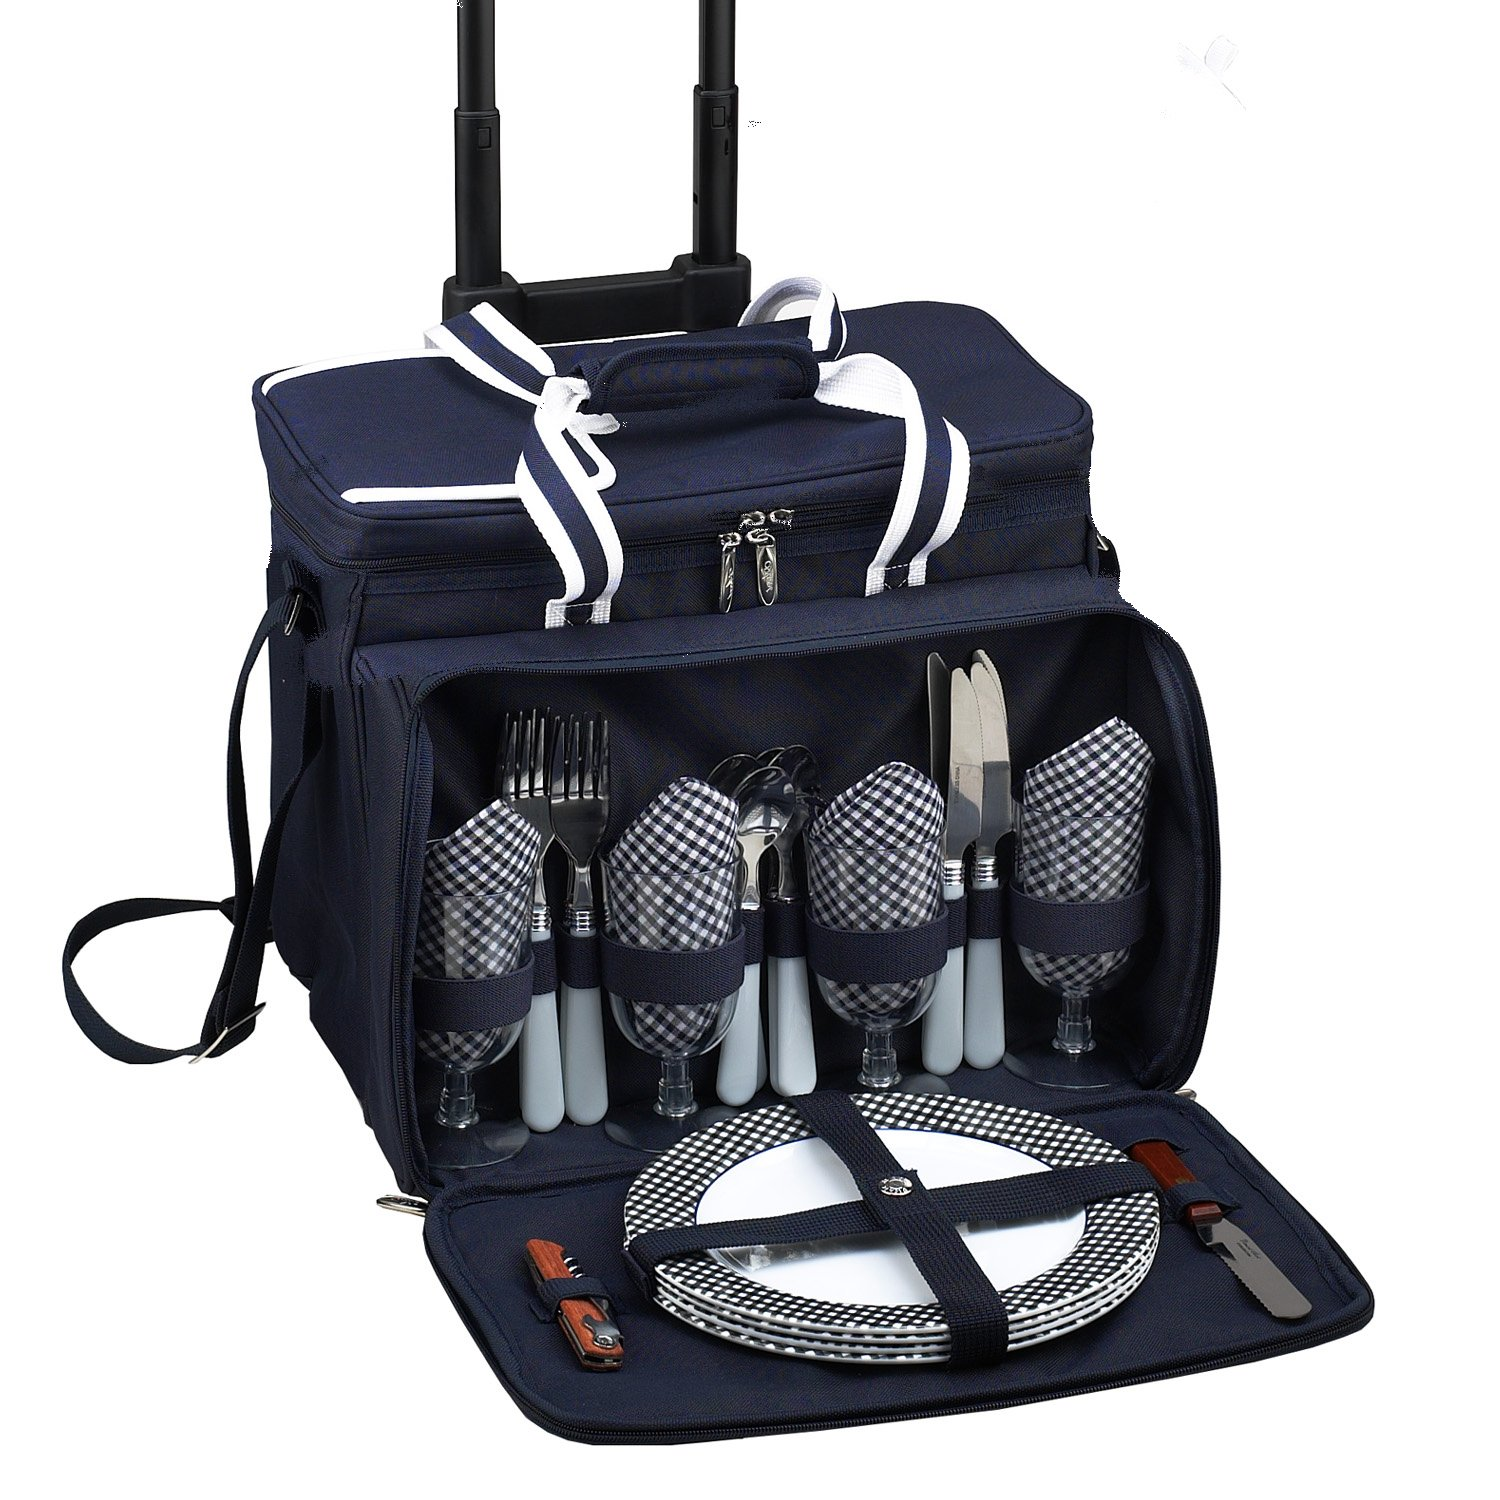 Picnic at Ascot Original Insulated Picnic Cooler with Service for 4 on Wheels-Designed & Assembled in the USA by Picnic at Ascot